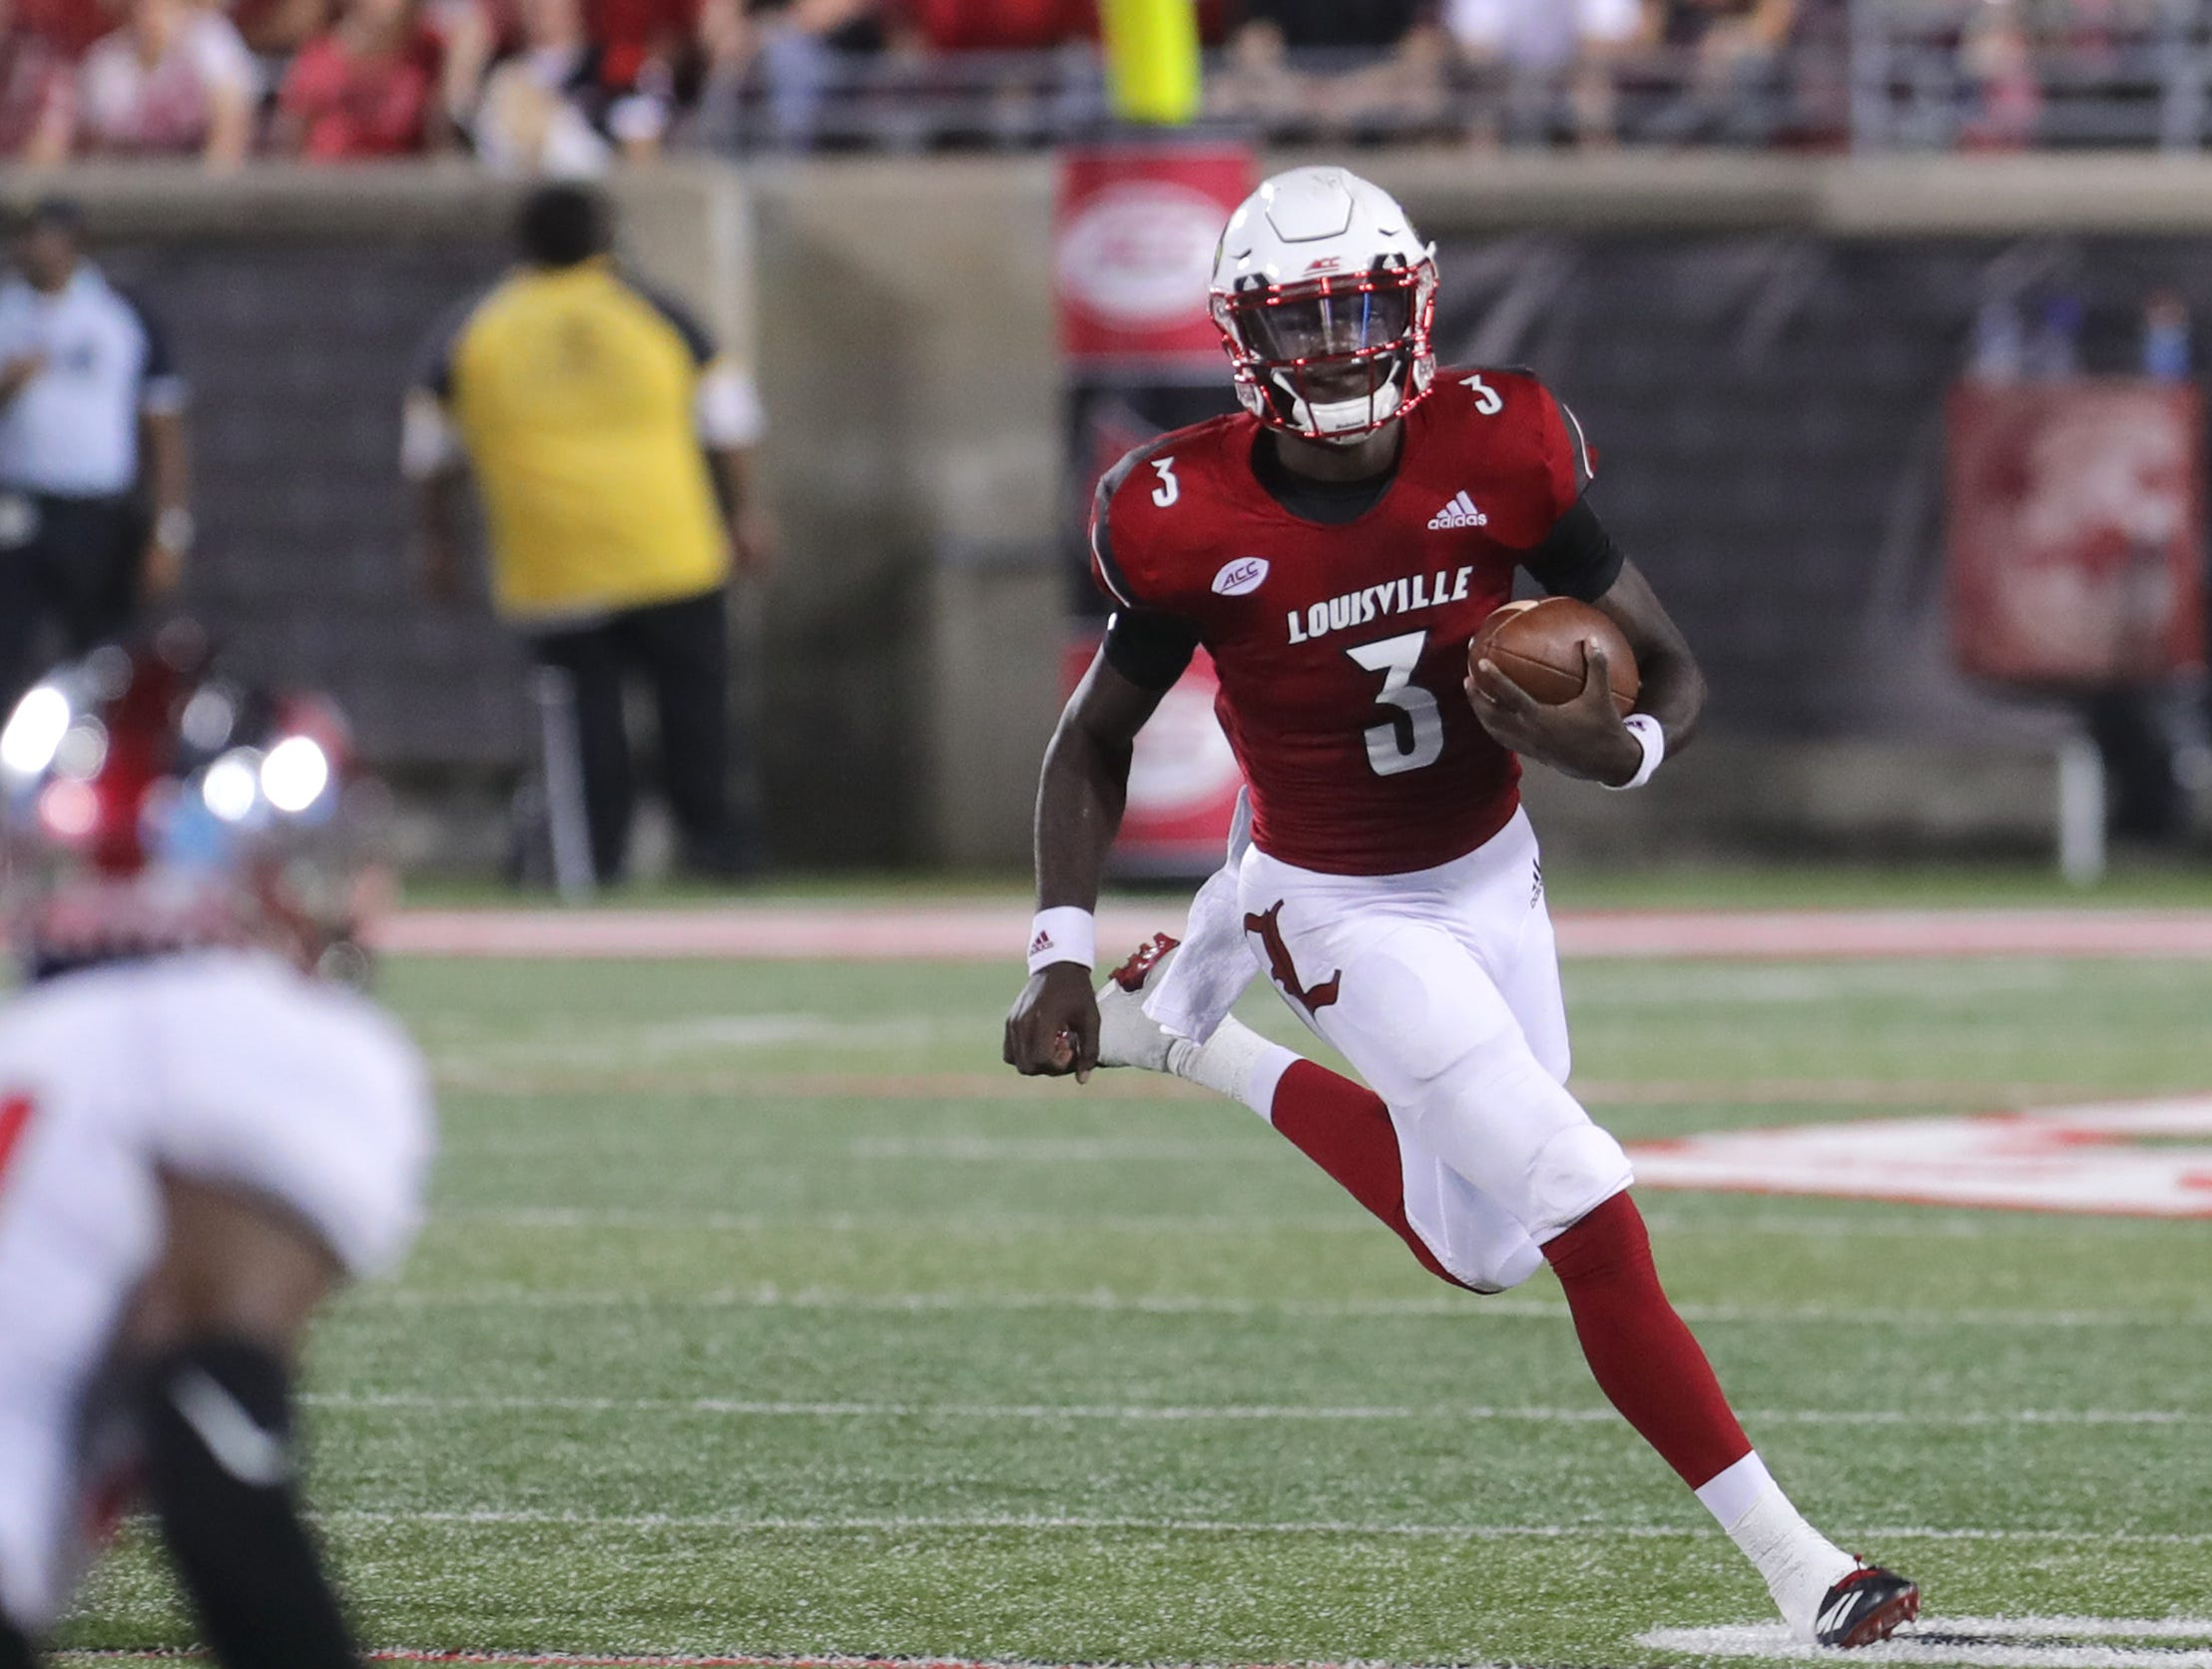 Louisville's Malik Cunningham runs for some positive yards.  